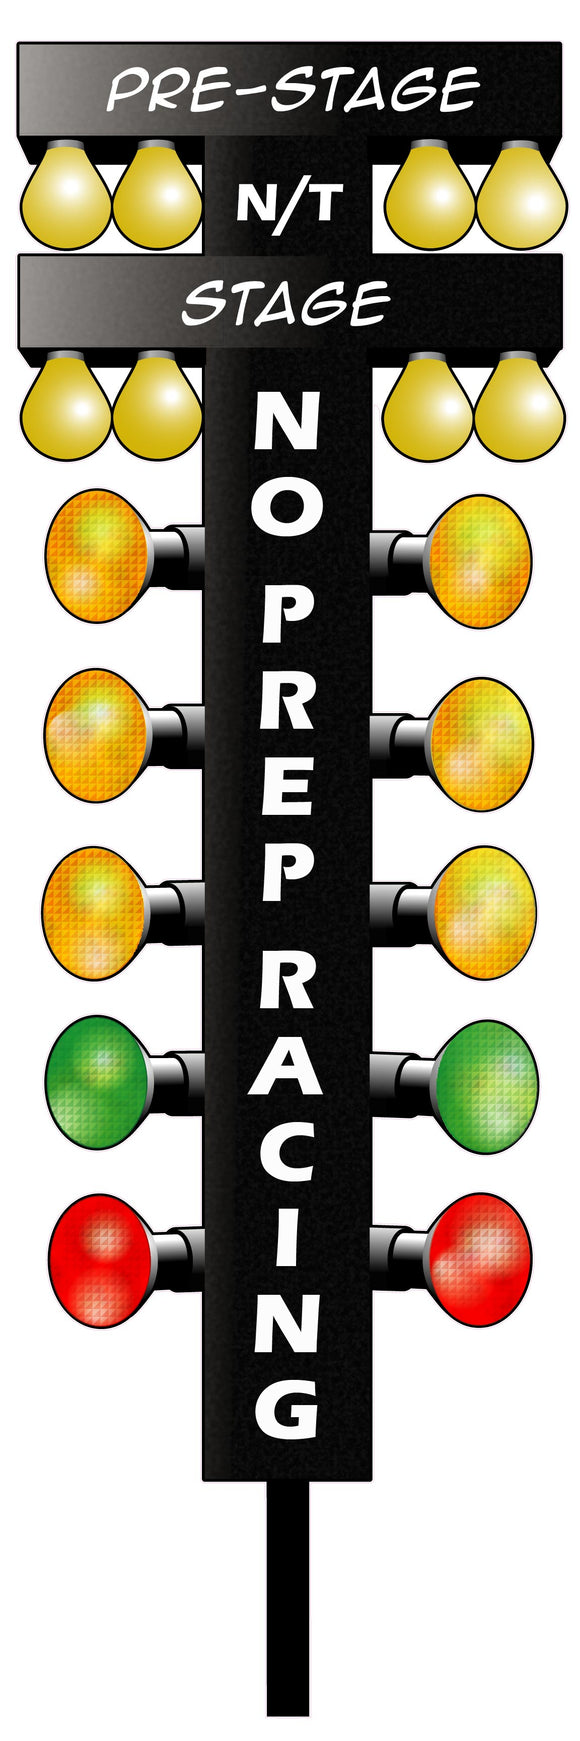 NO Prep Racing Drag Tree Decal